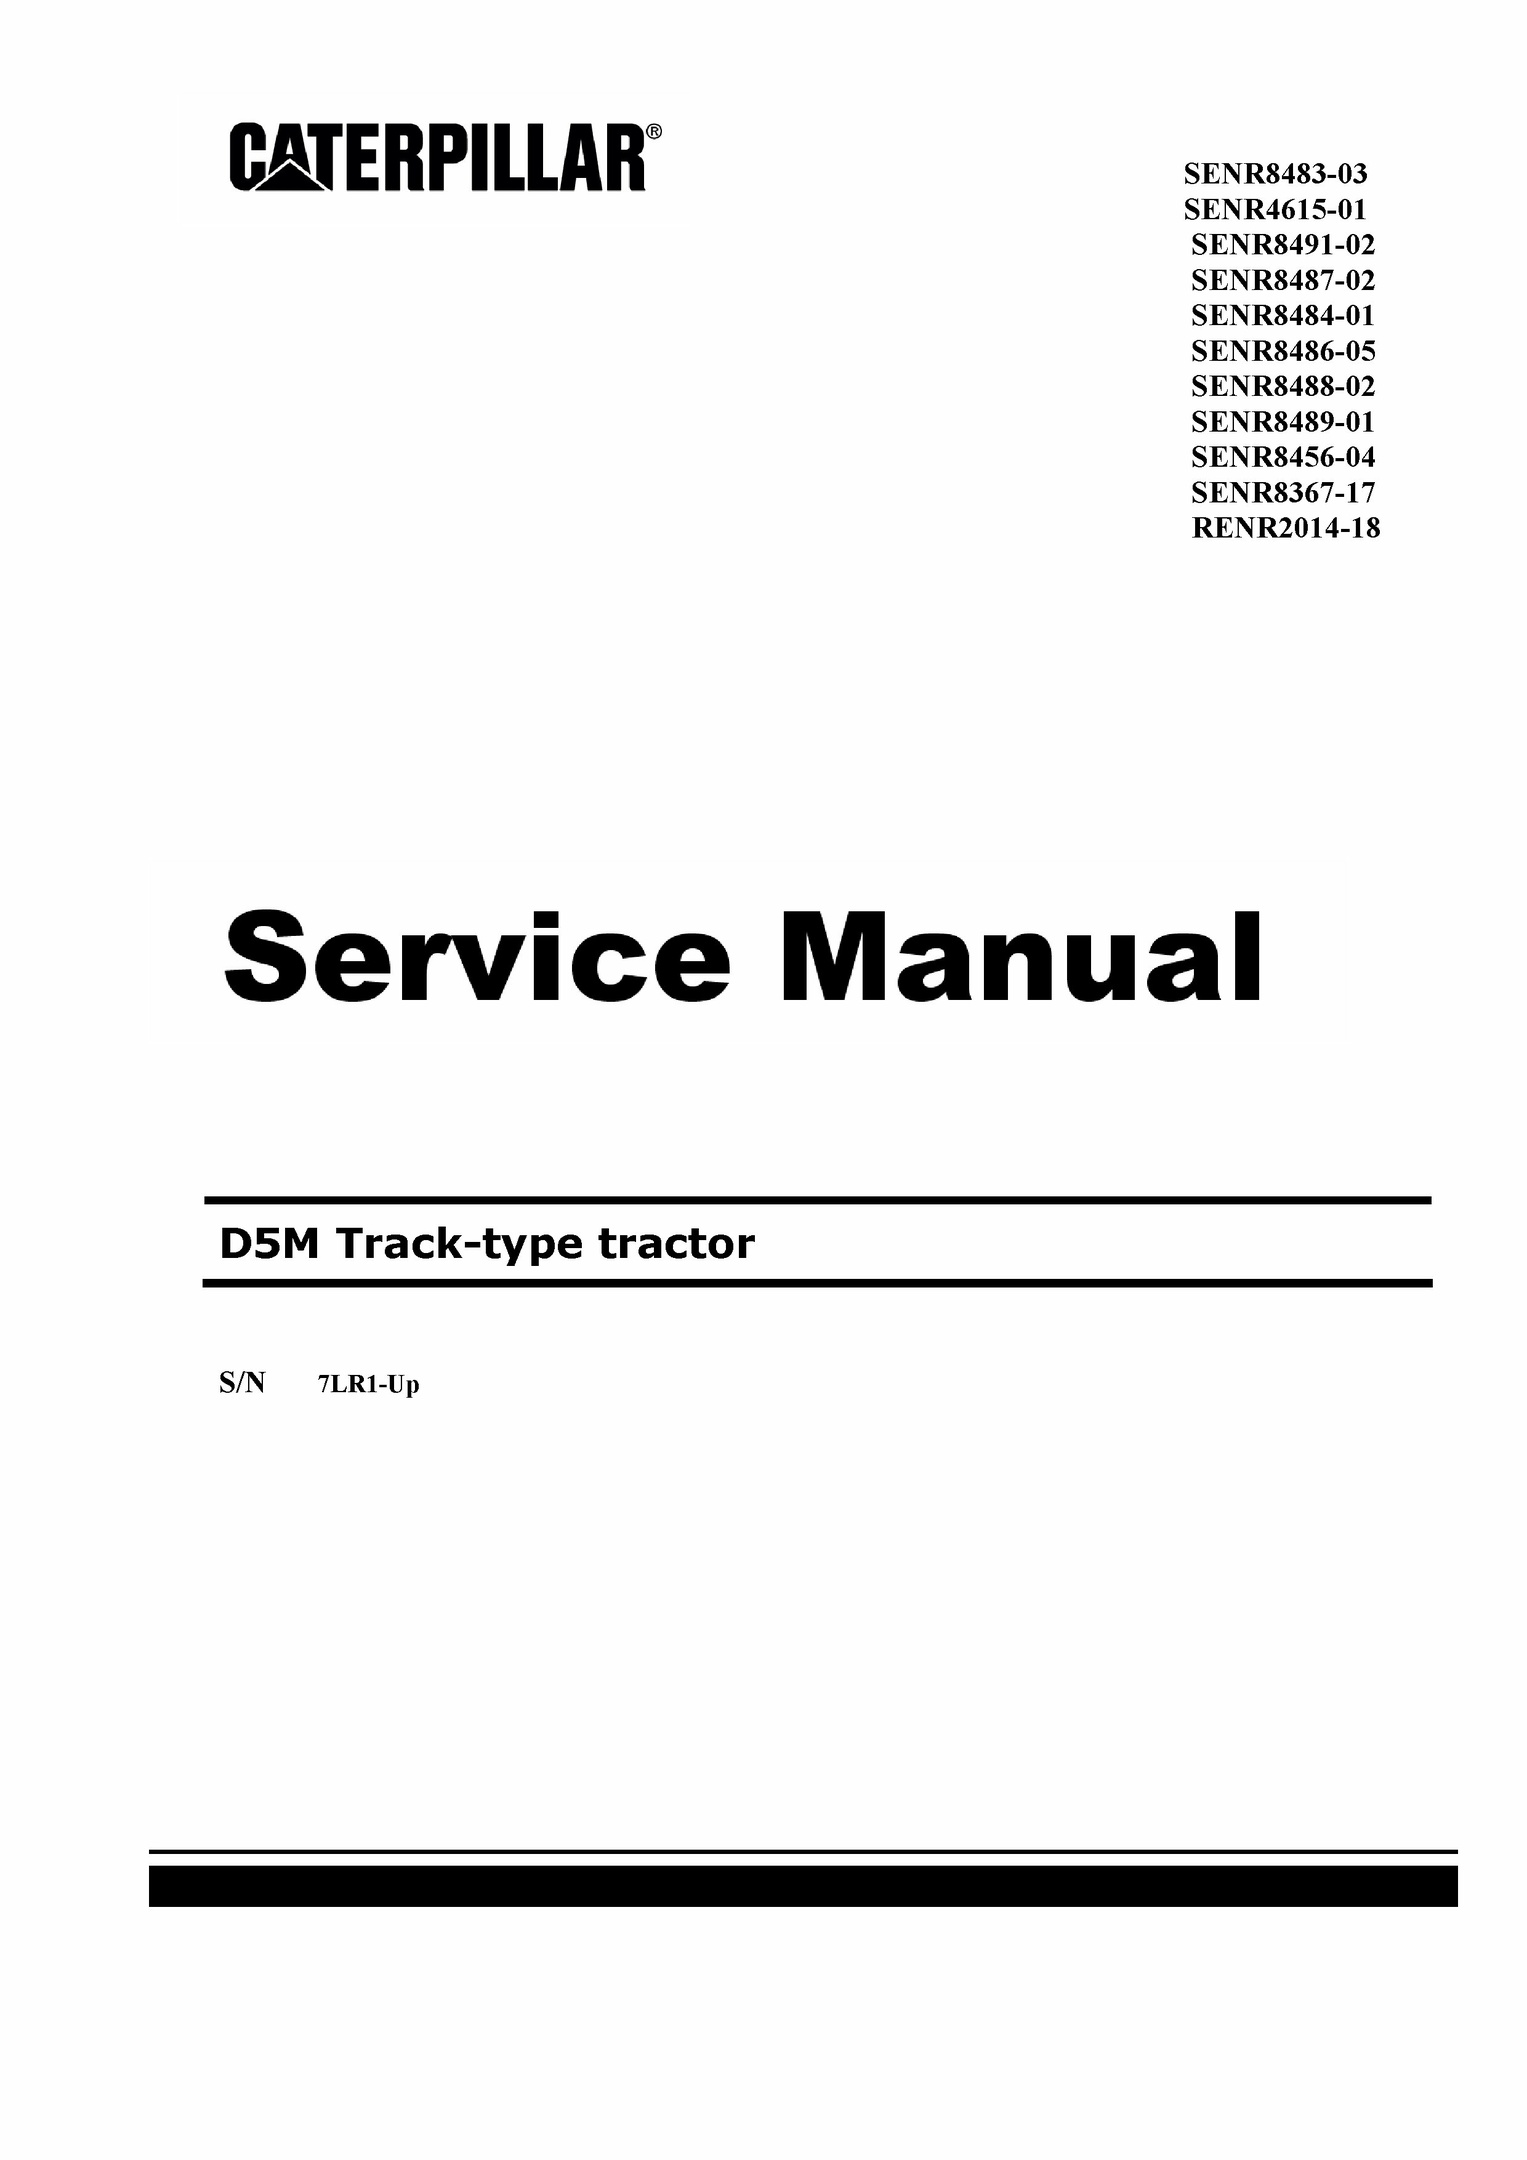 Workshop Manual. Selfless Massey Ferguson 7700 Series Tractors Agriculture/farming